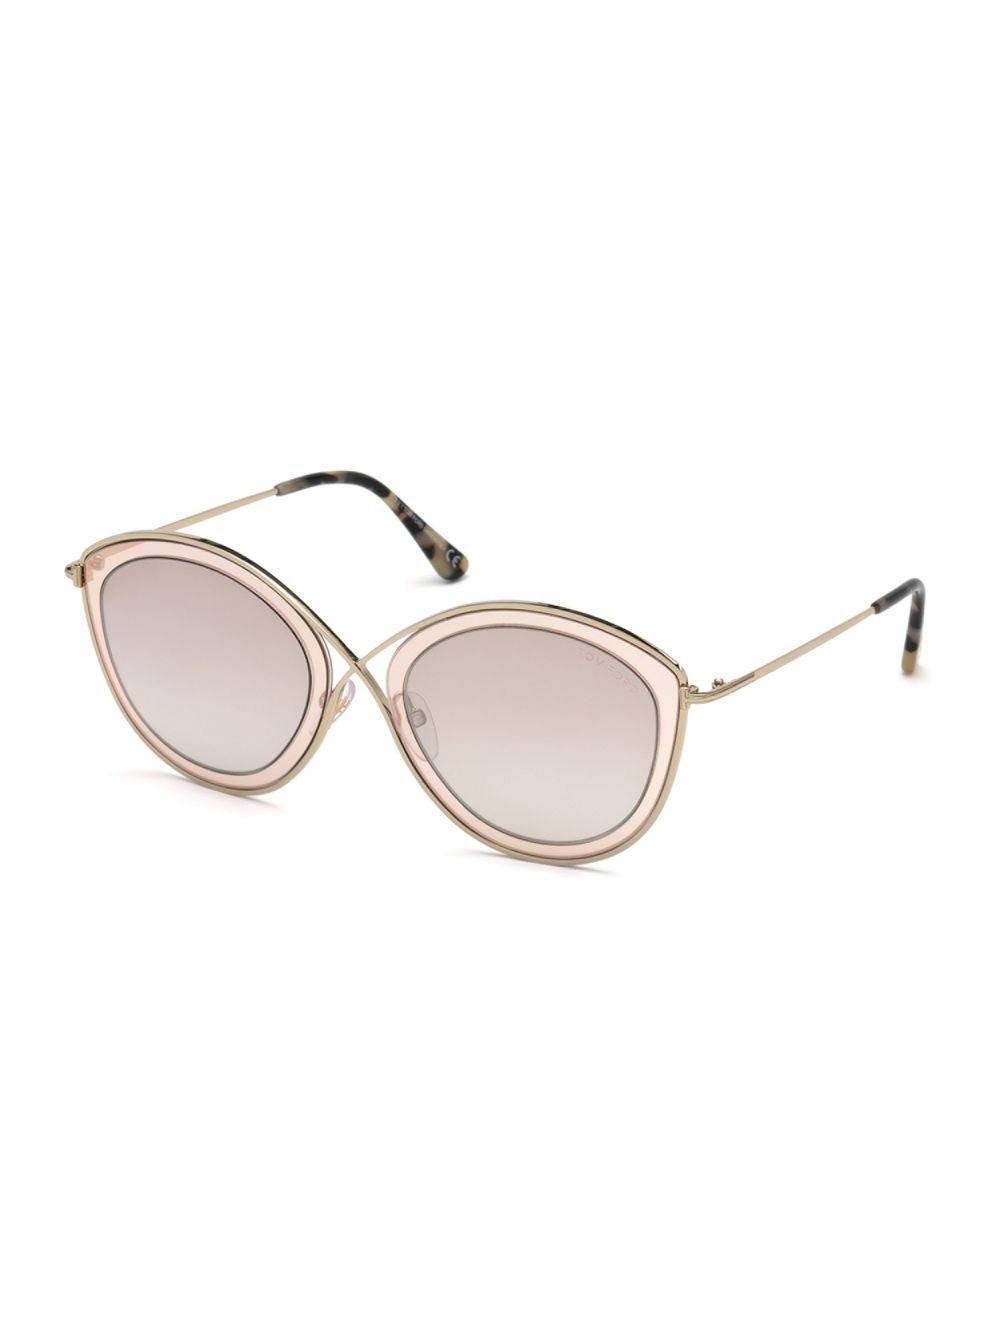 7b9c438090 Lyst - Tom Ford Sascha 55mm Butterfly Sunglasses in Brown